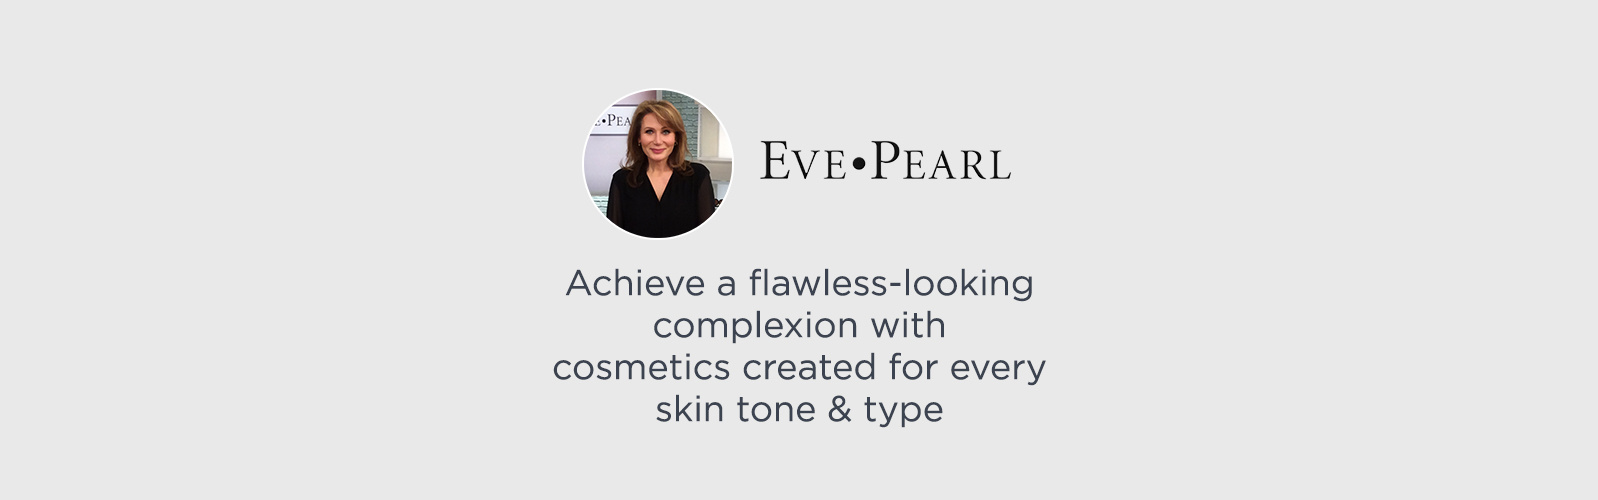 EVE PEARL, Achieve a flawless-looking complexion with cosmetics created for every skin tone & type